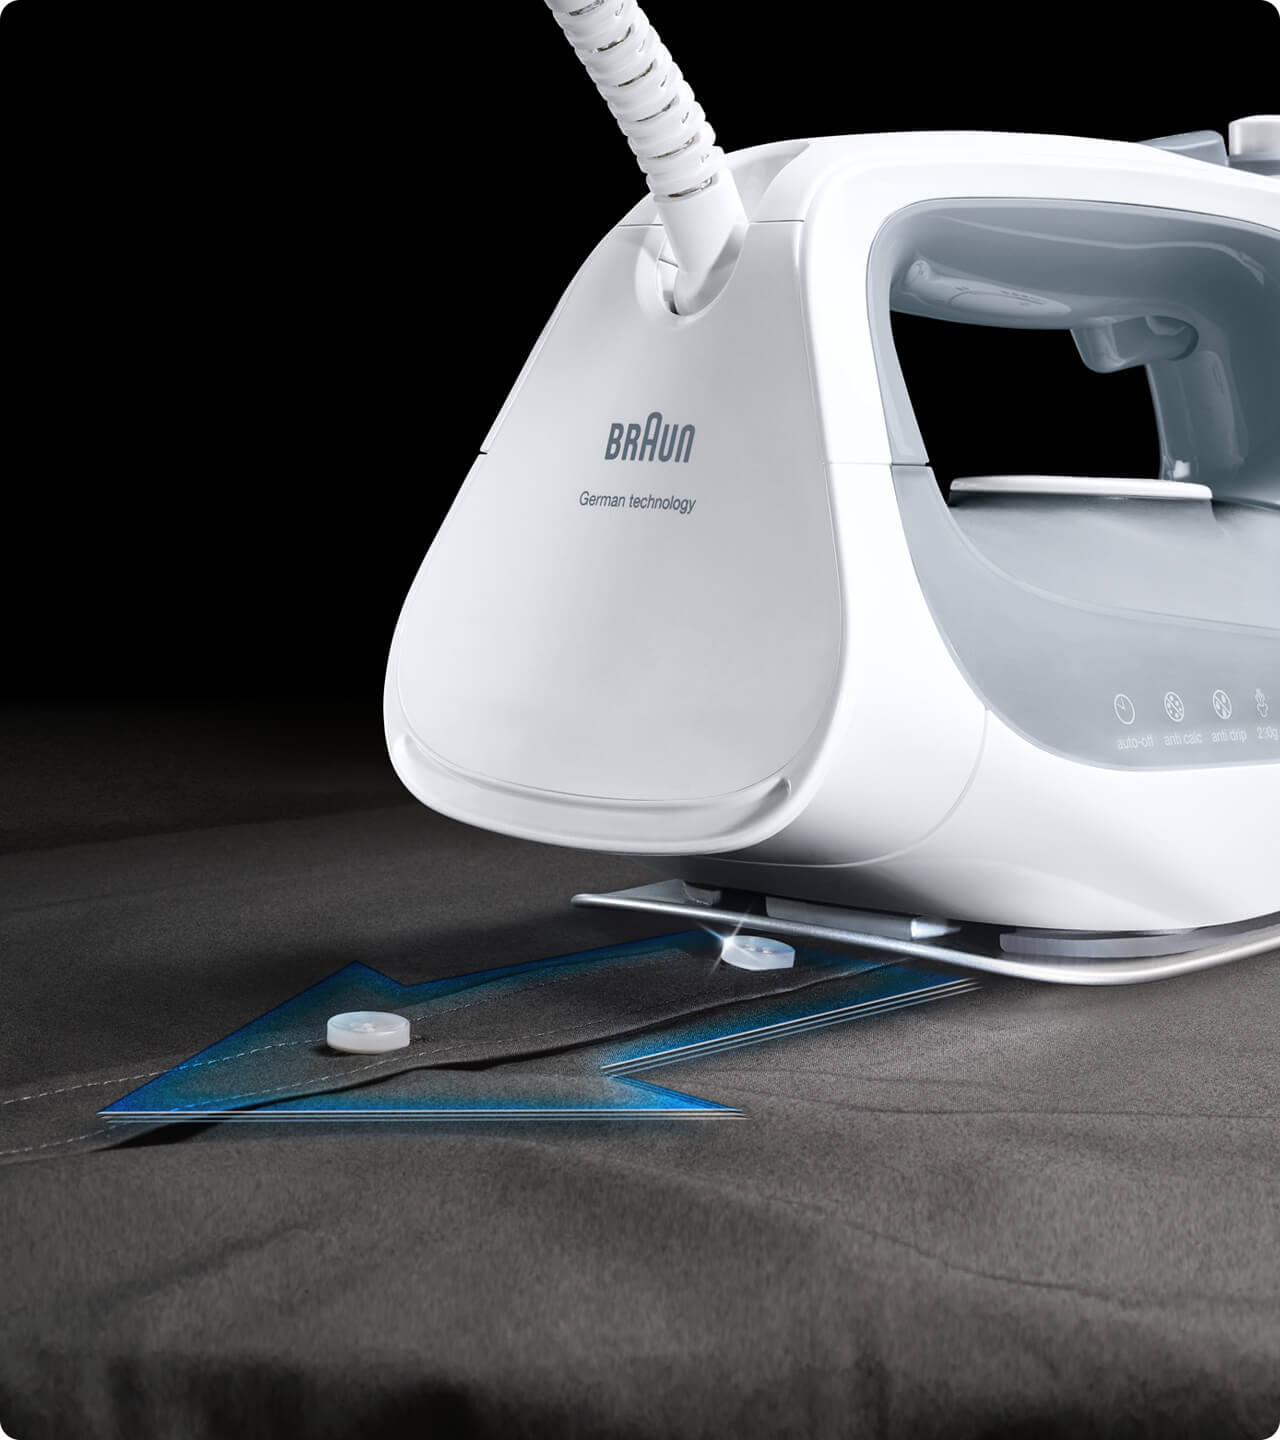 Braun Steam Irons with EloxalPlus soleplate